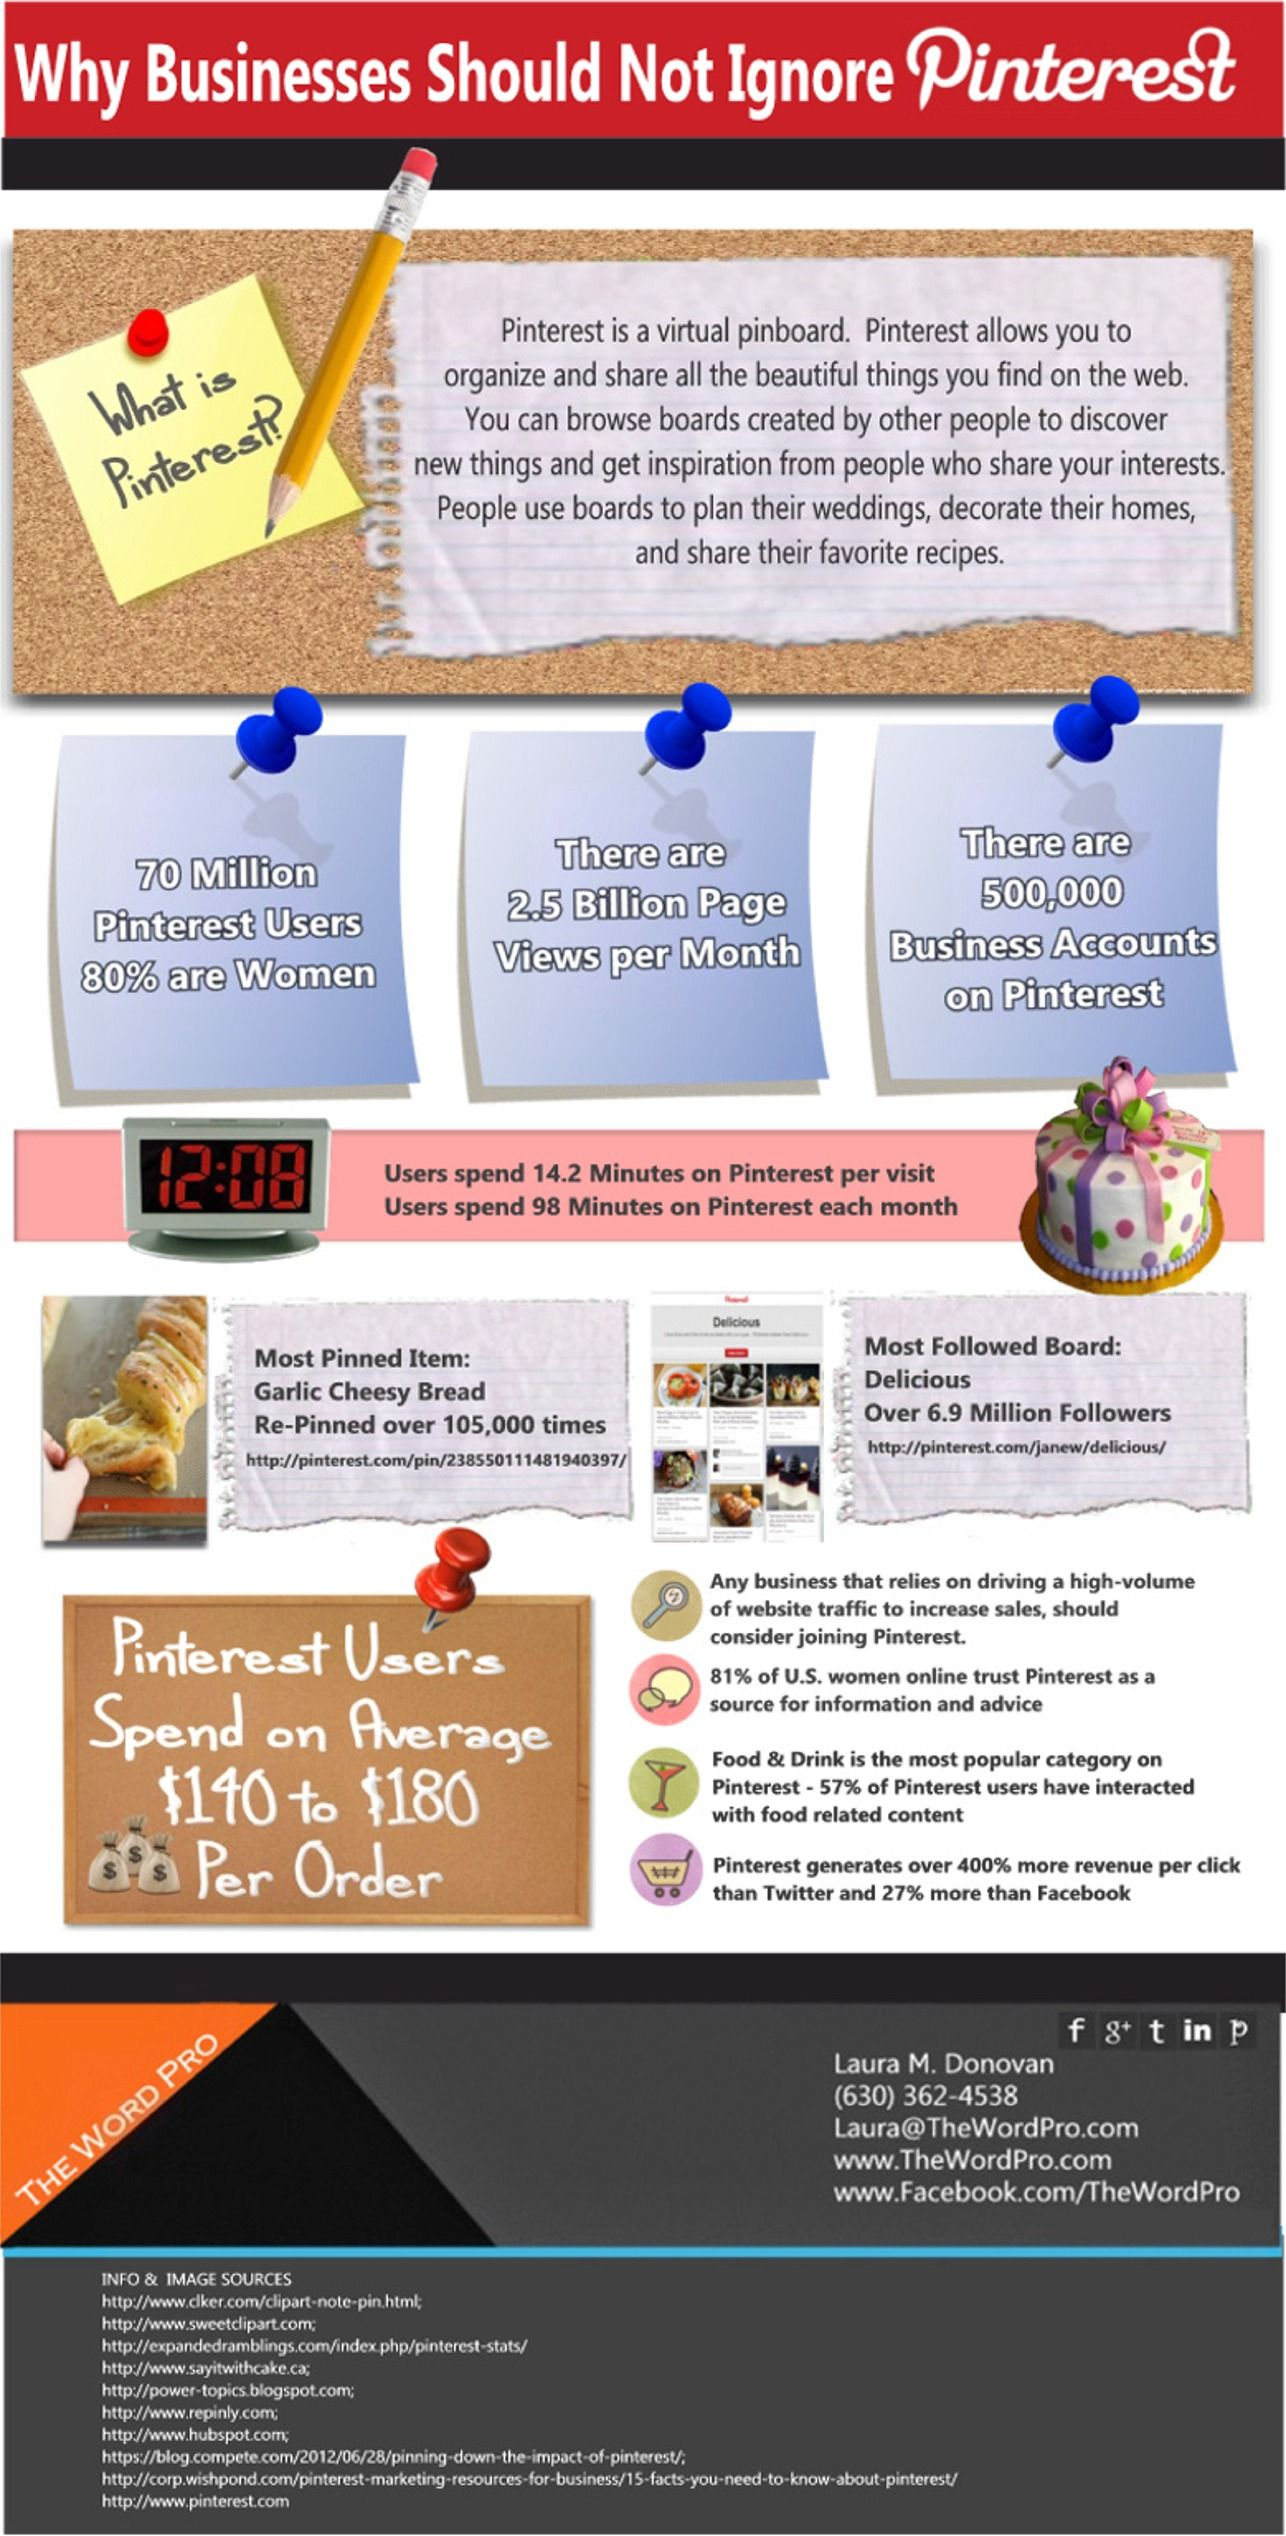 #Pinterest and Why it is Important to #Business [INFOGRAPHIC]